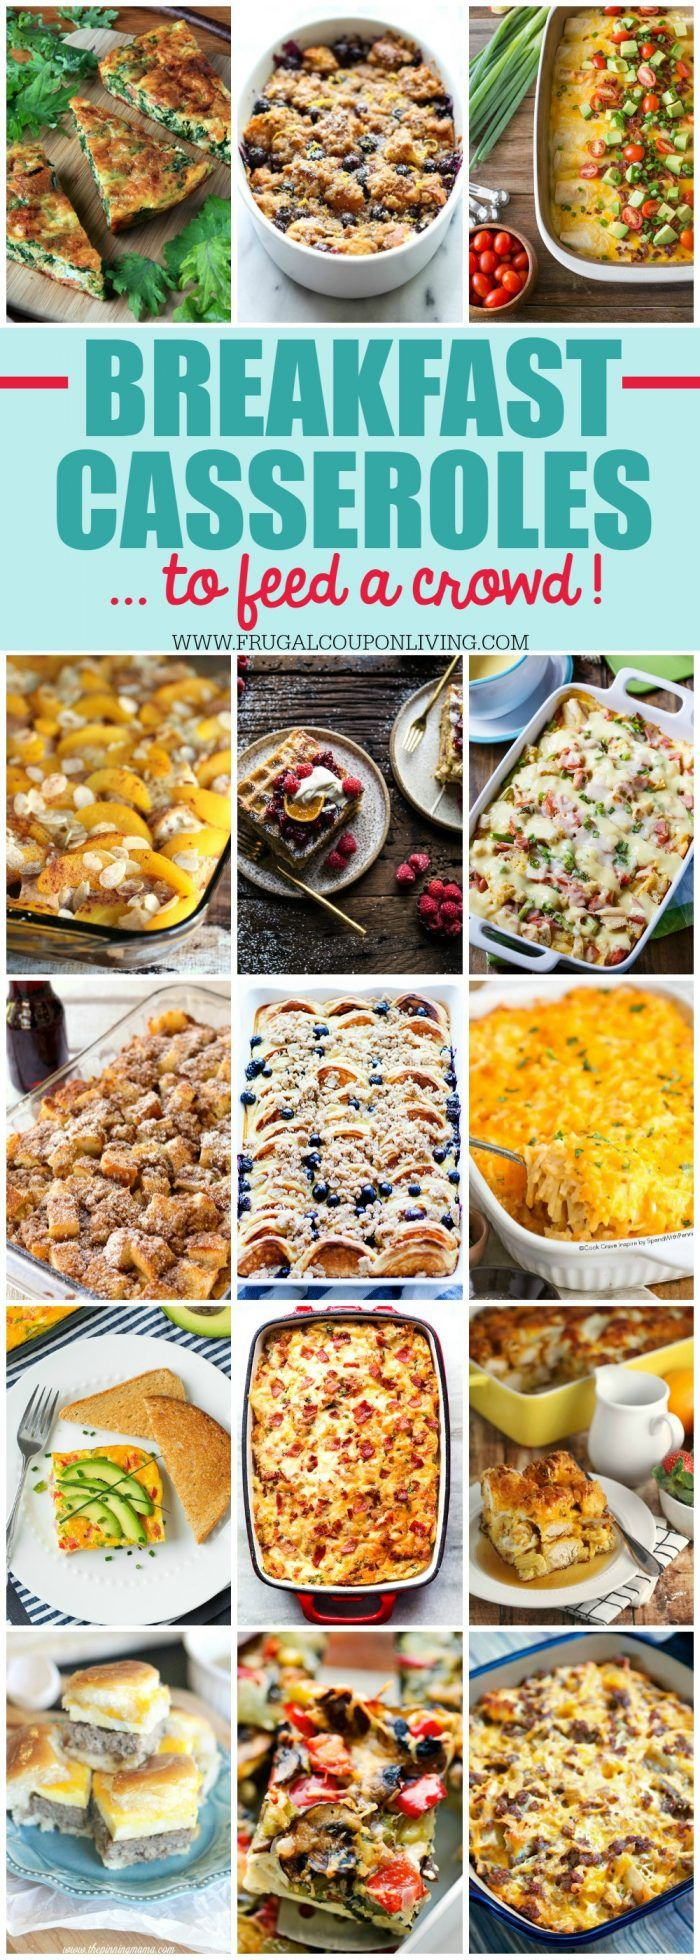 Breakfast Casserole Ideas for a Large Crowd this holiday season. Dump in all together and serve in in these holiday casserole ideas on Frugal Coupon Living.